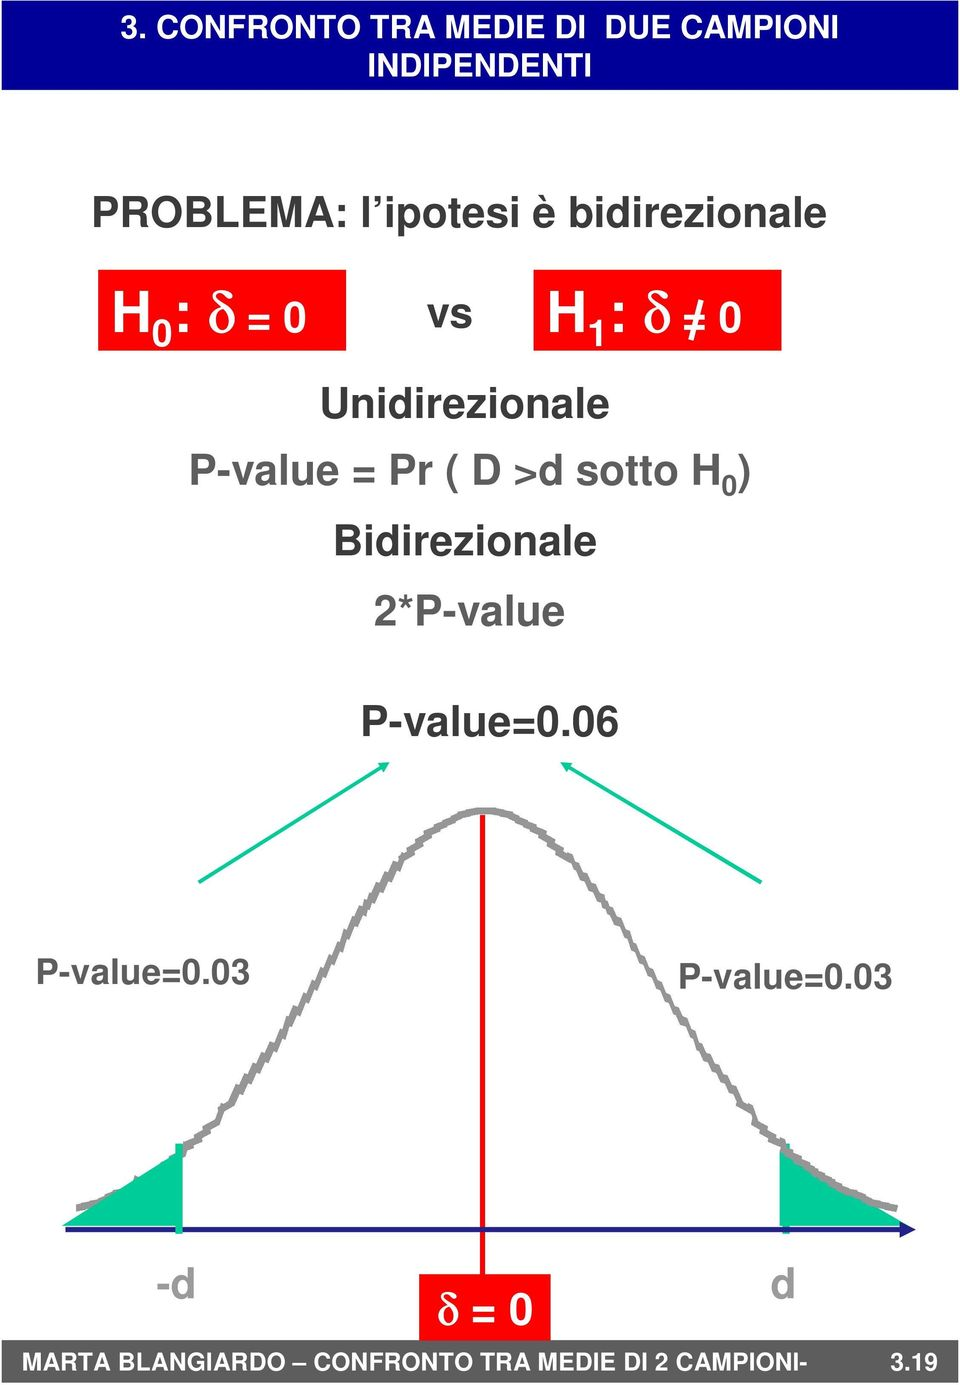 Bidirezionale 2*P-value P-value=0.06 P-value=0.03 P-value=0.